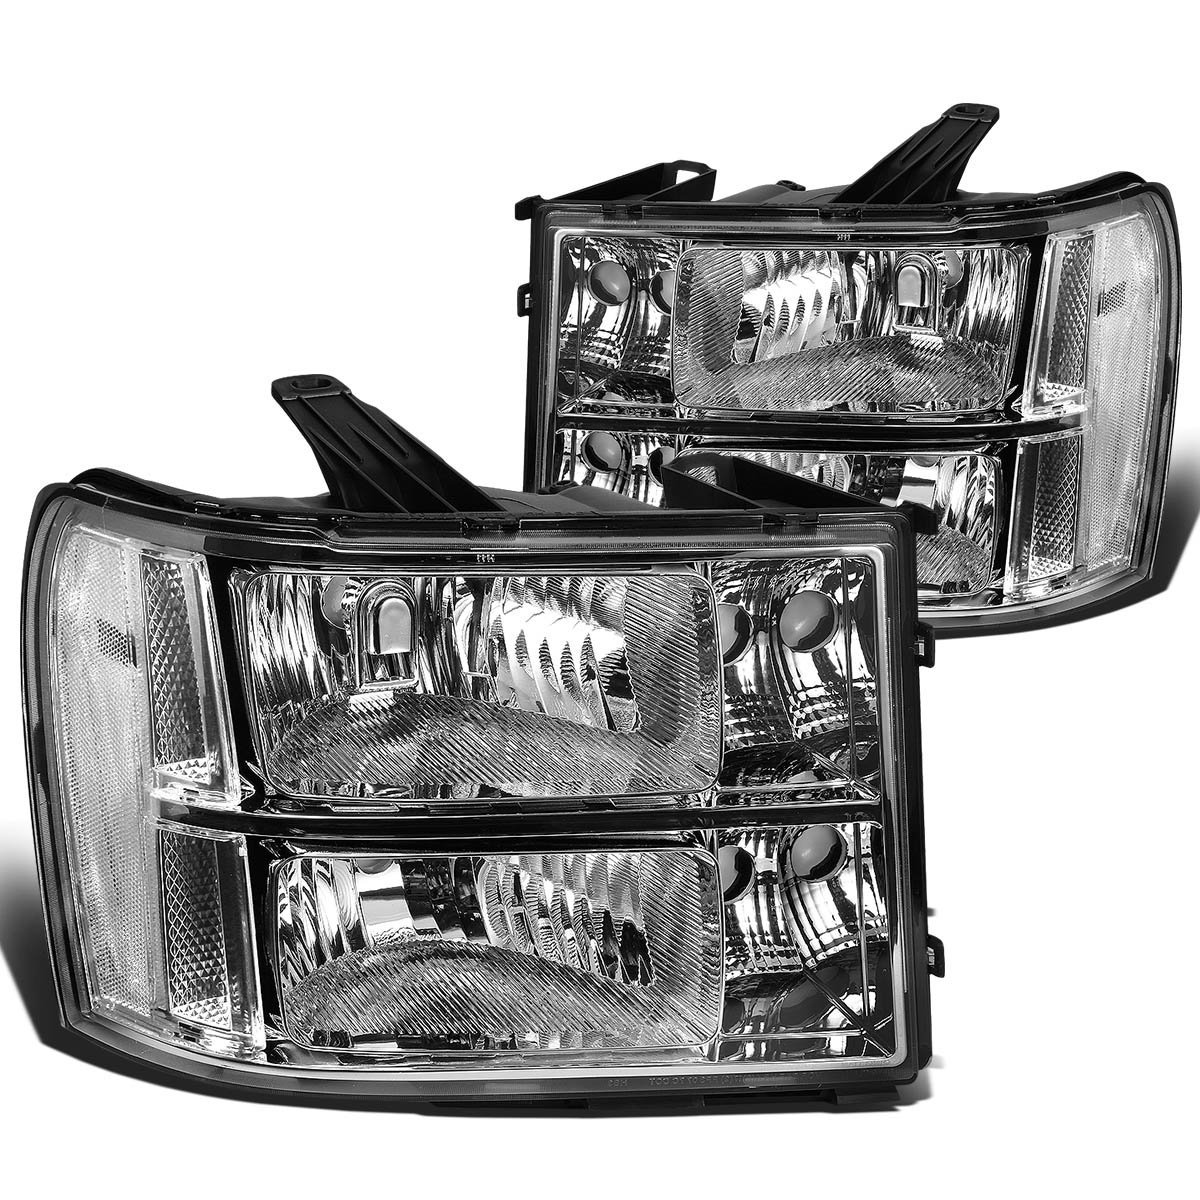 2007-2013 GMC Sierra 1500 2500 3500 HD Replacement Crystal